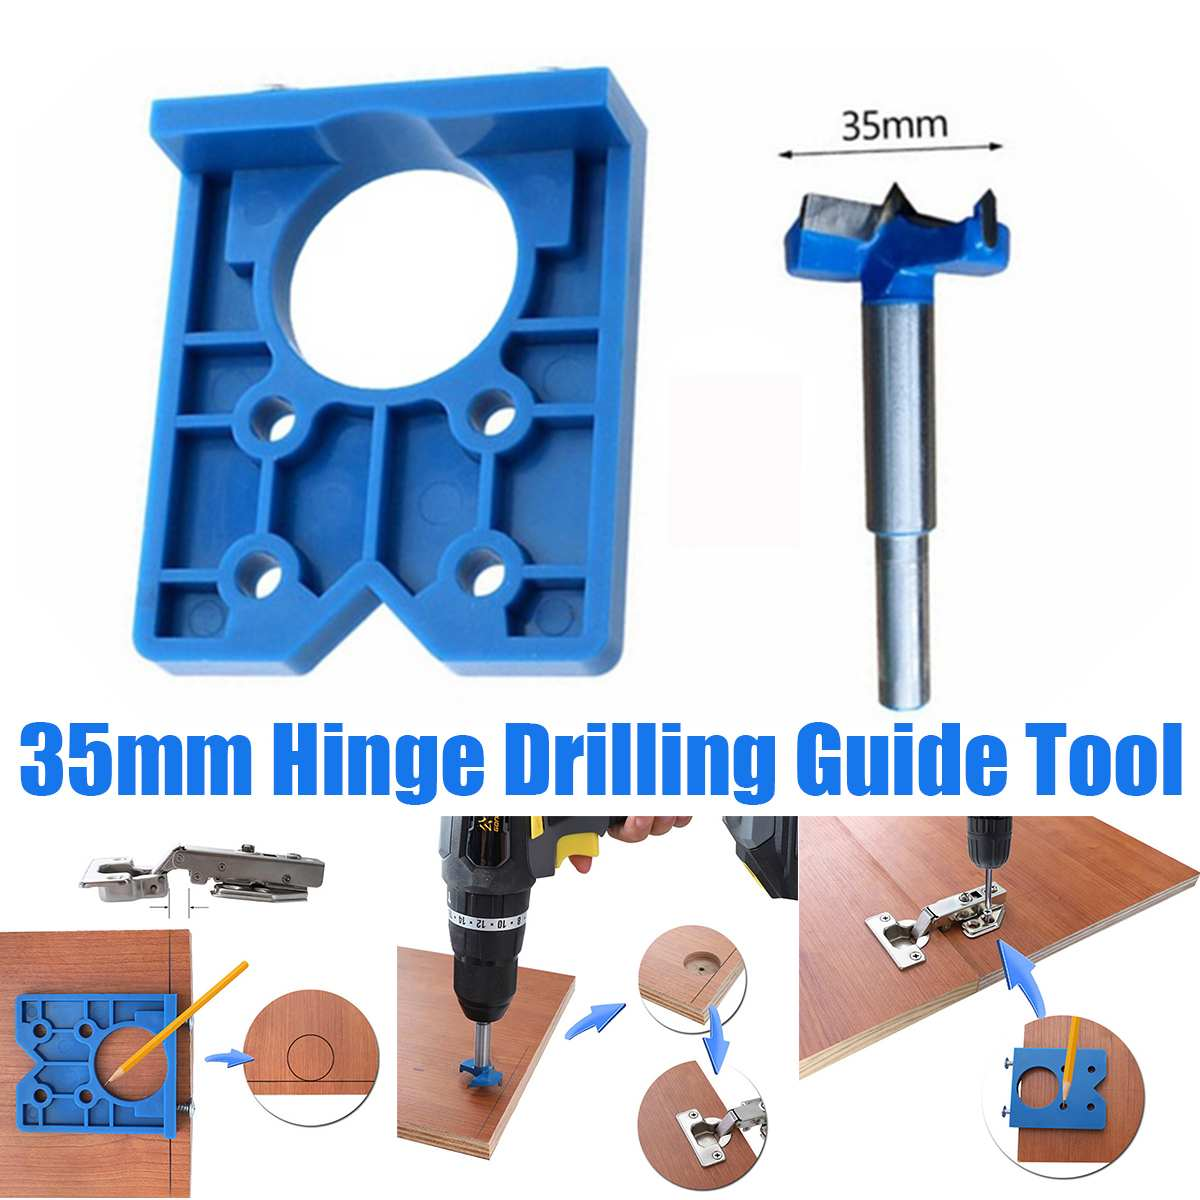 35mm Hinge Hole Drilling Guide Locator Hinge Drilling Jig Drill Bits Woodworking Door Hole Opener Cabinet Accessories Tool